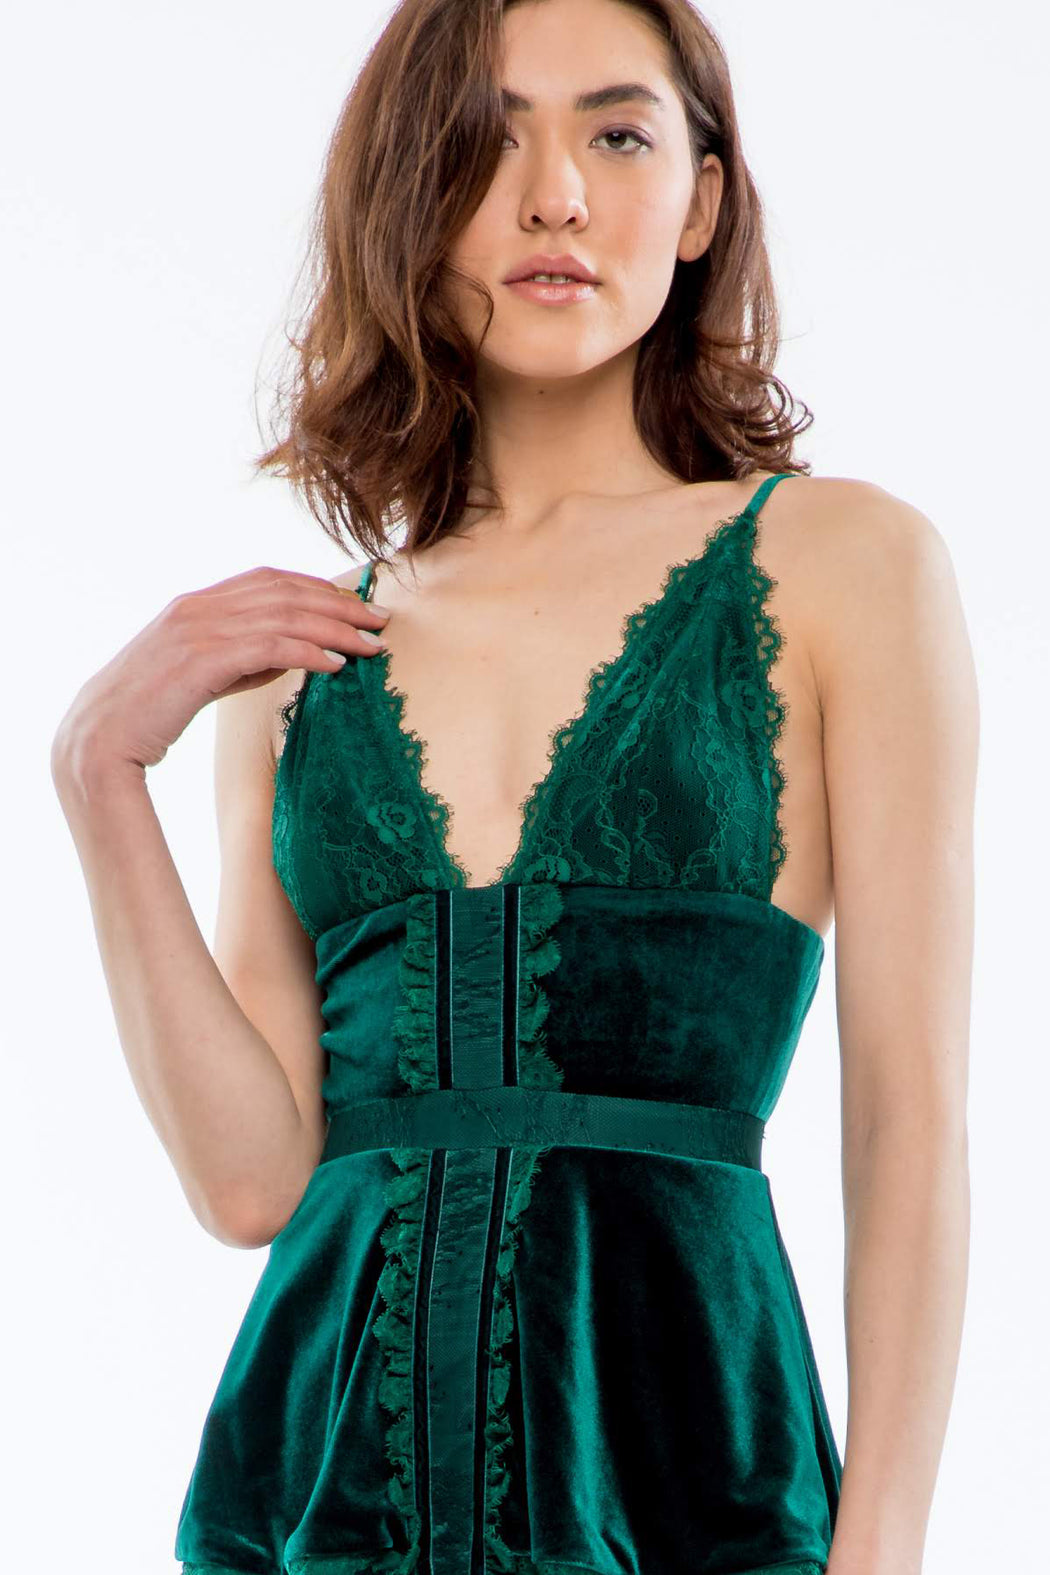 Bridget Lace and Velvet Midi Dress (Emerald) - SAU LEE